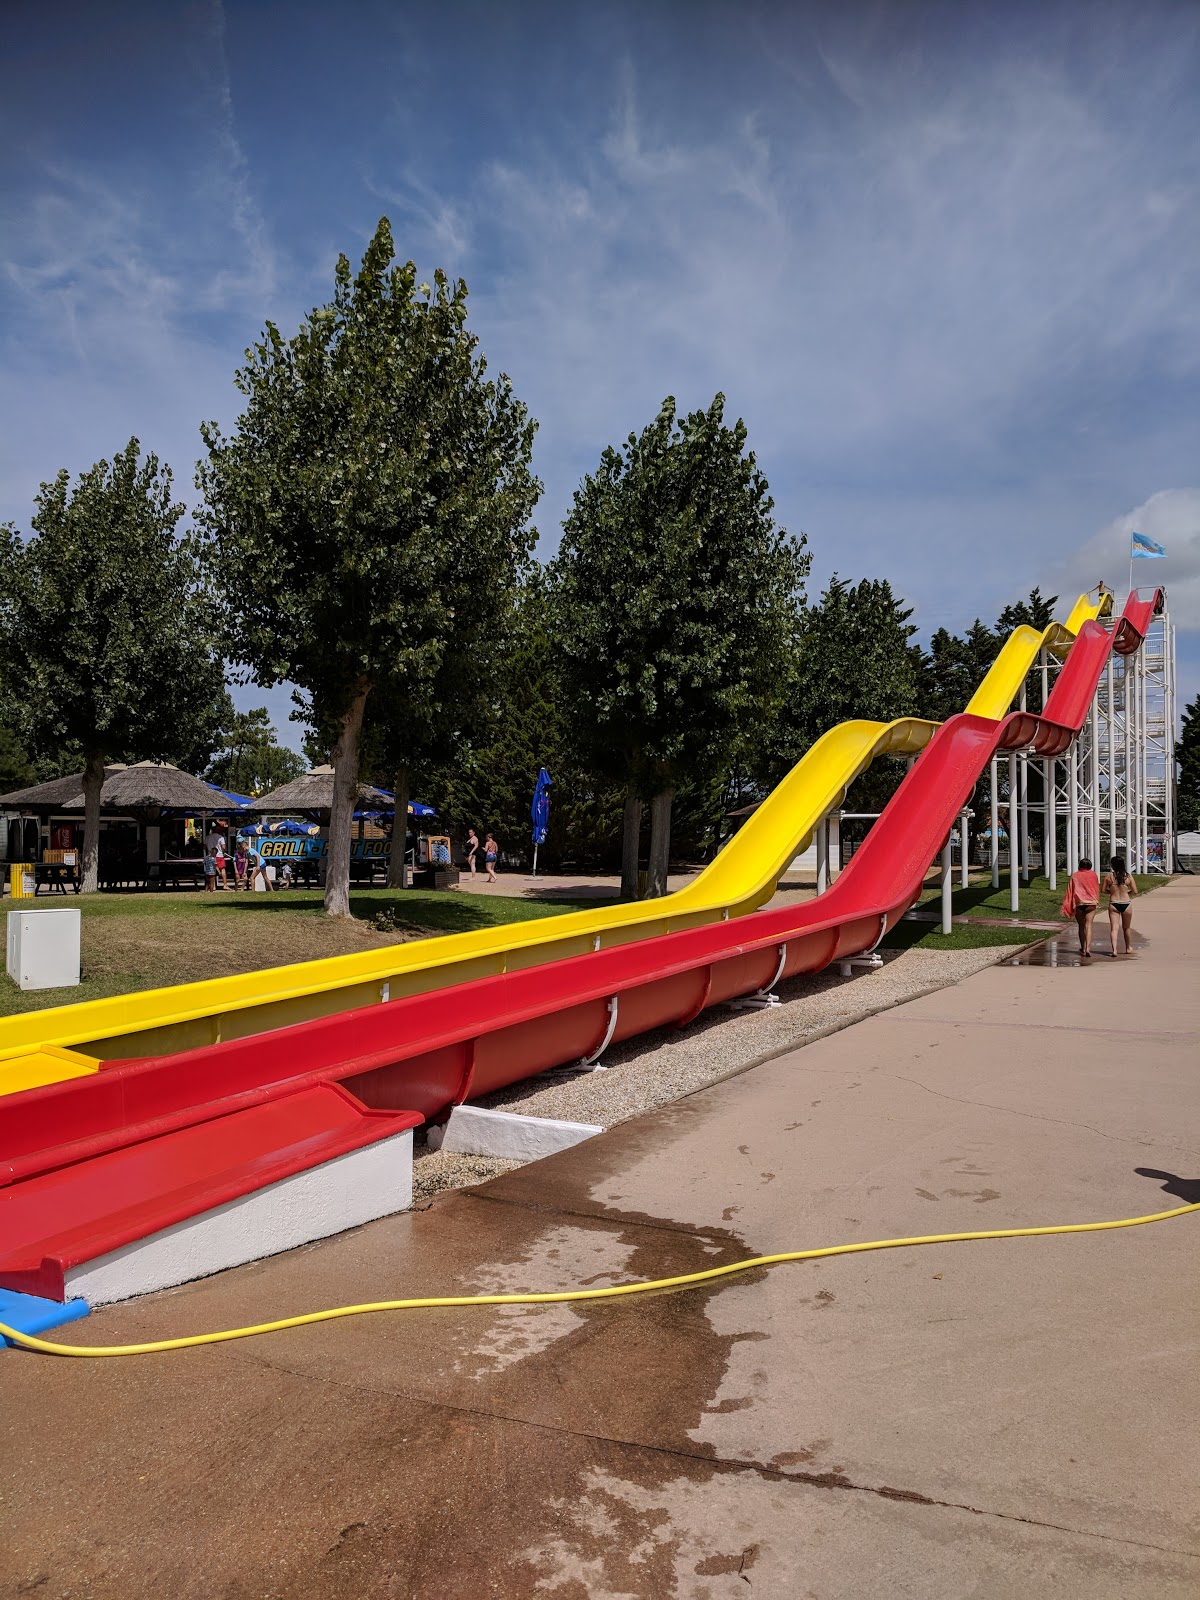 Anyone else hate water parks?  Atlantic Toboggan Vendee Water park pictures and review